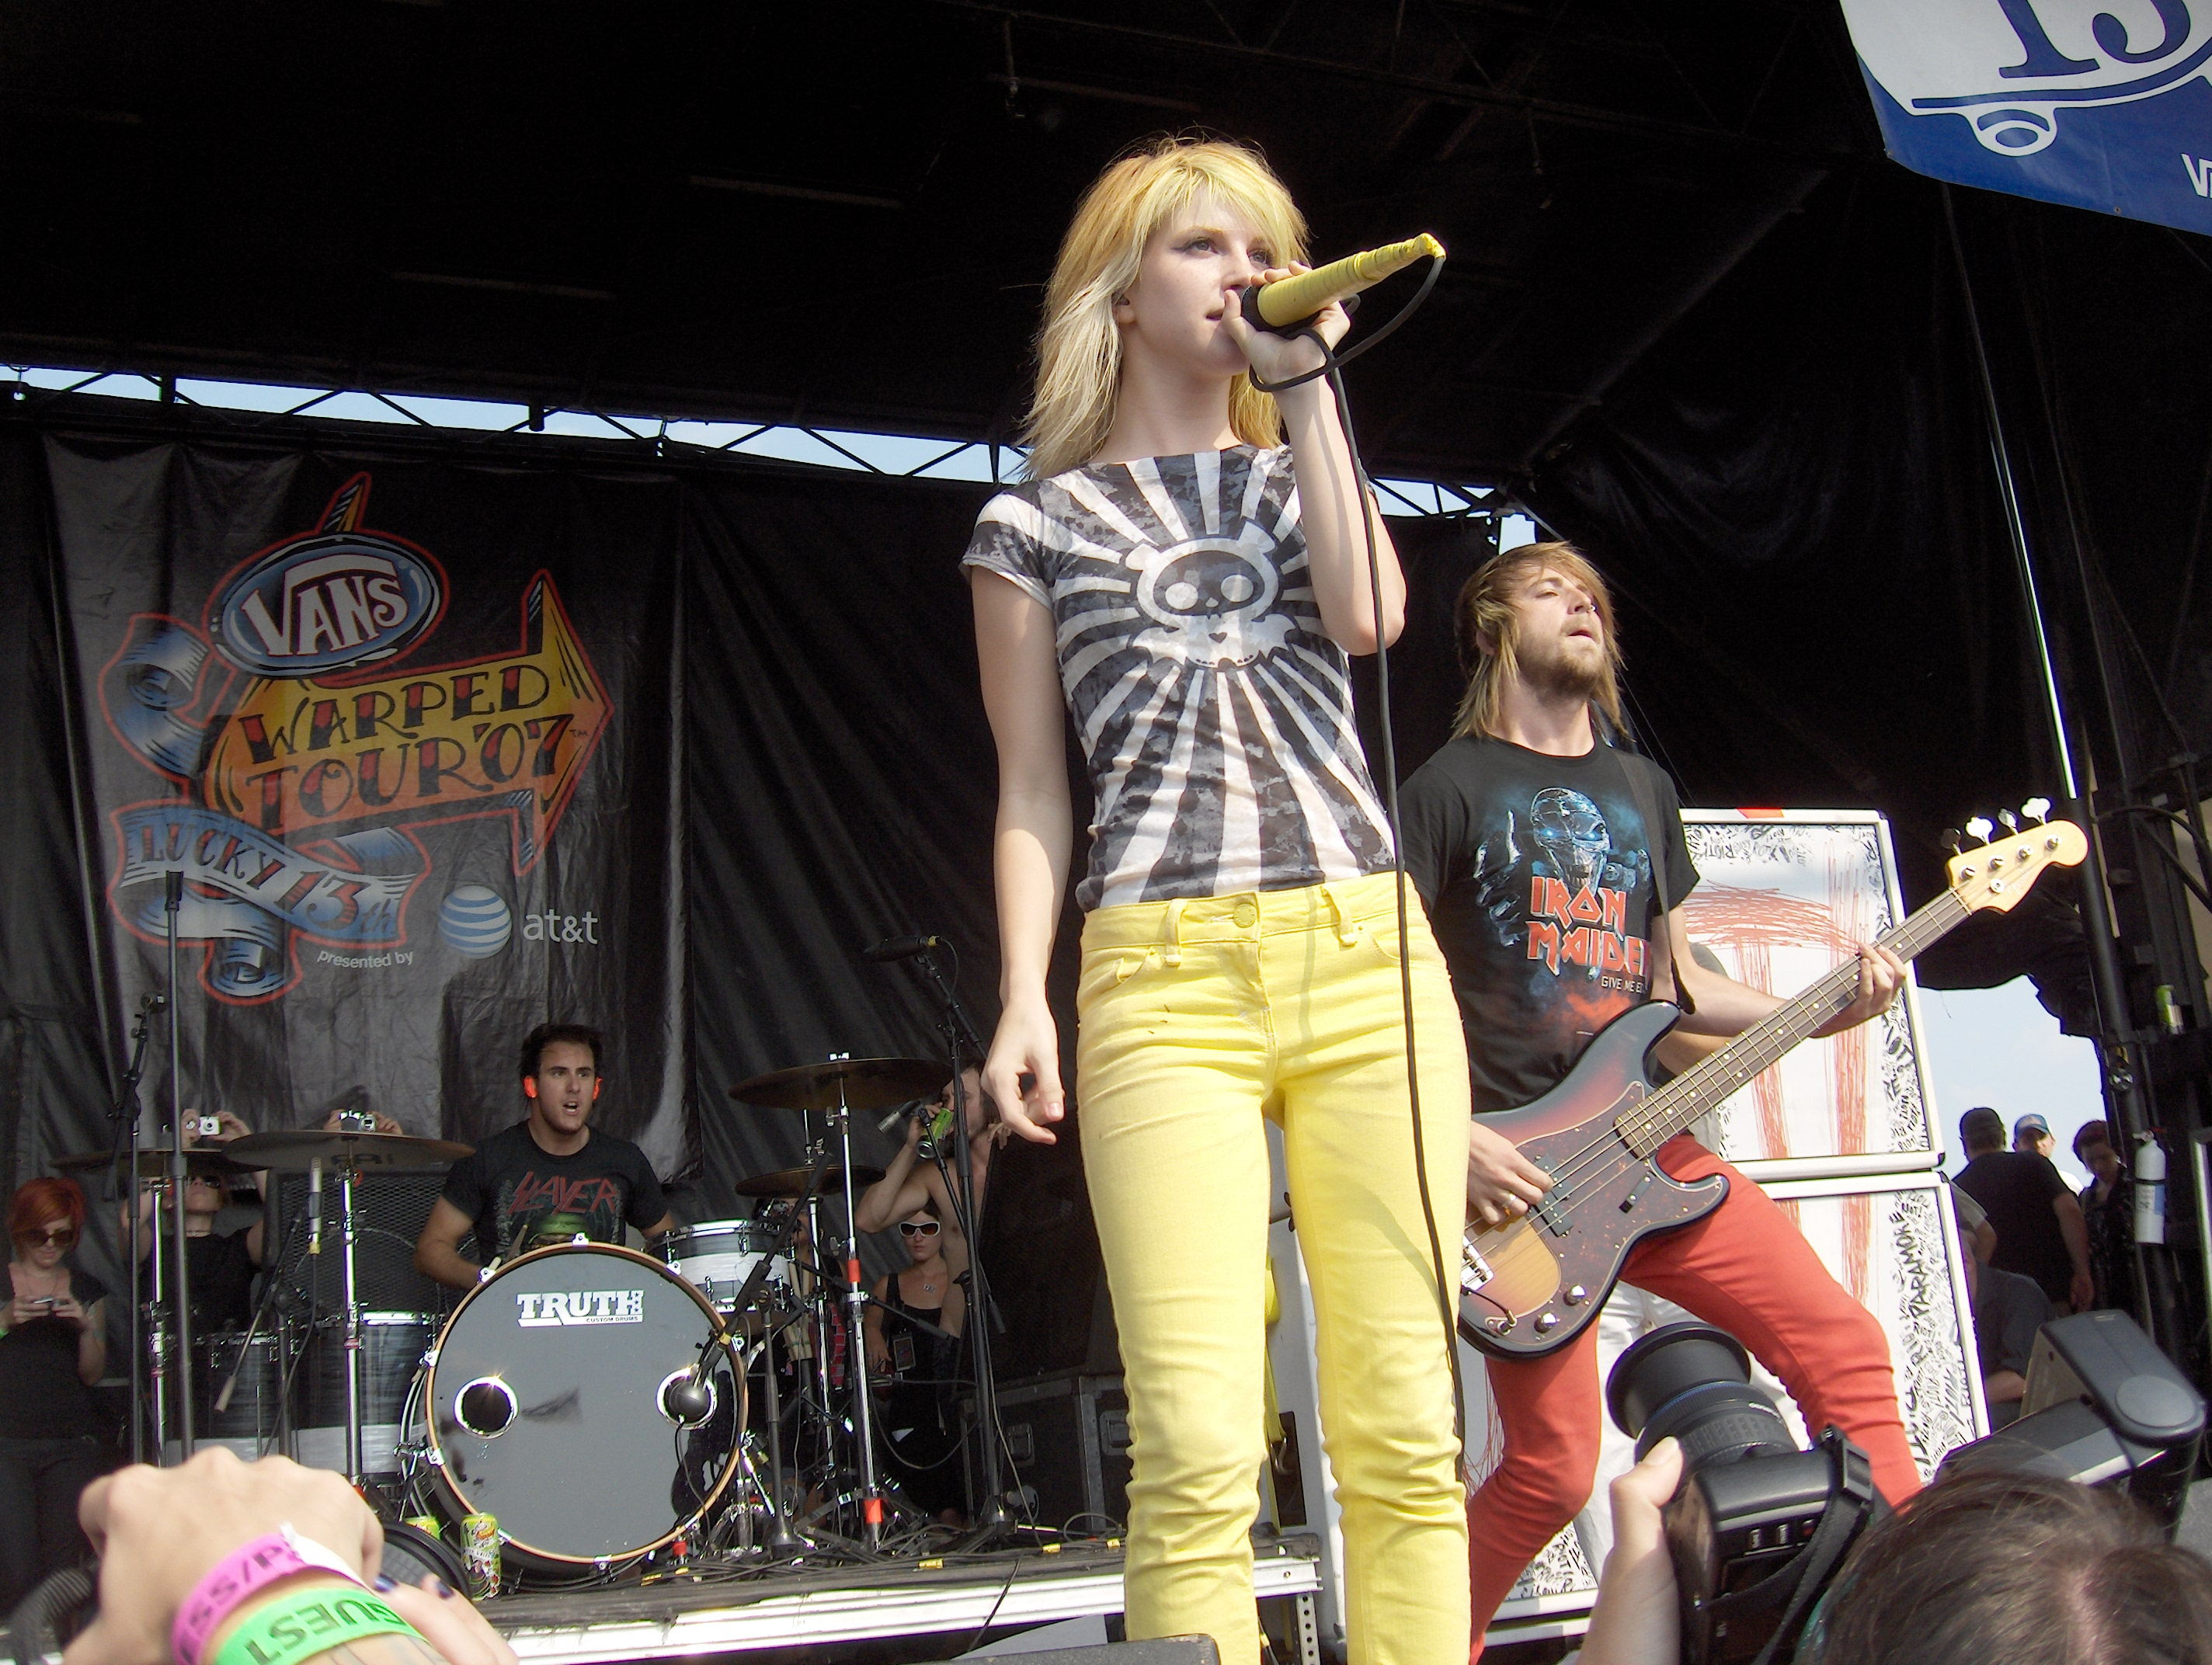 http://upload.wikimedia.org/wikipedia/commons/3/36/Paramore_Hayley_Williams03.jpg